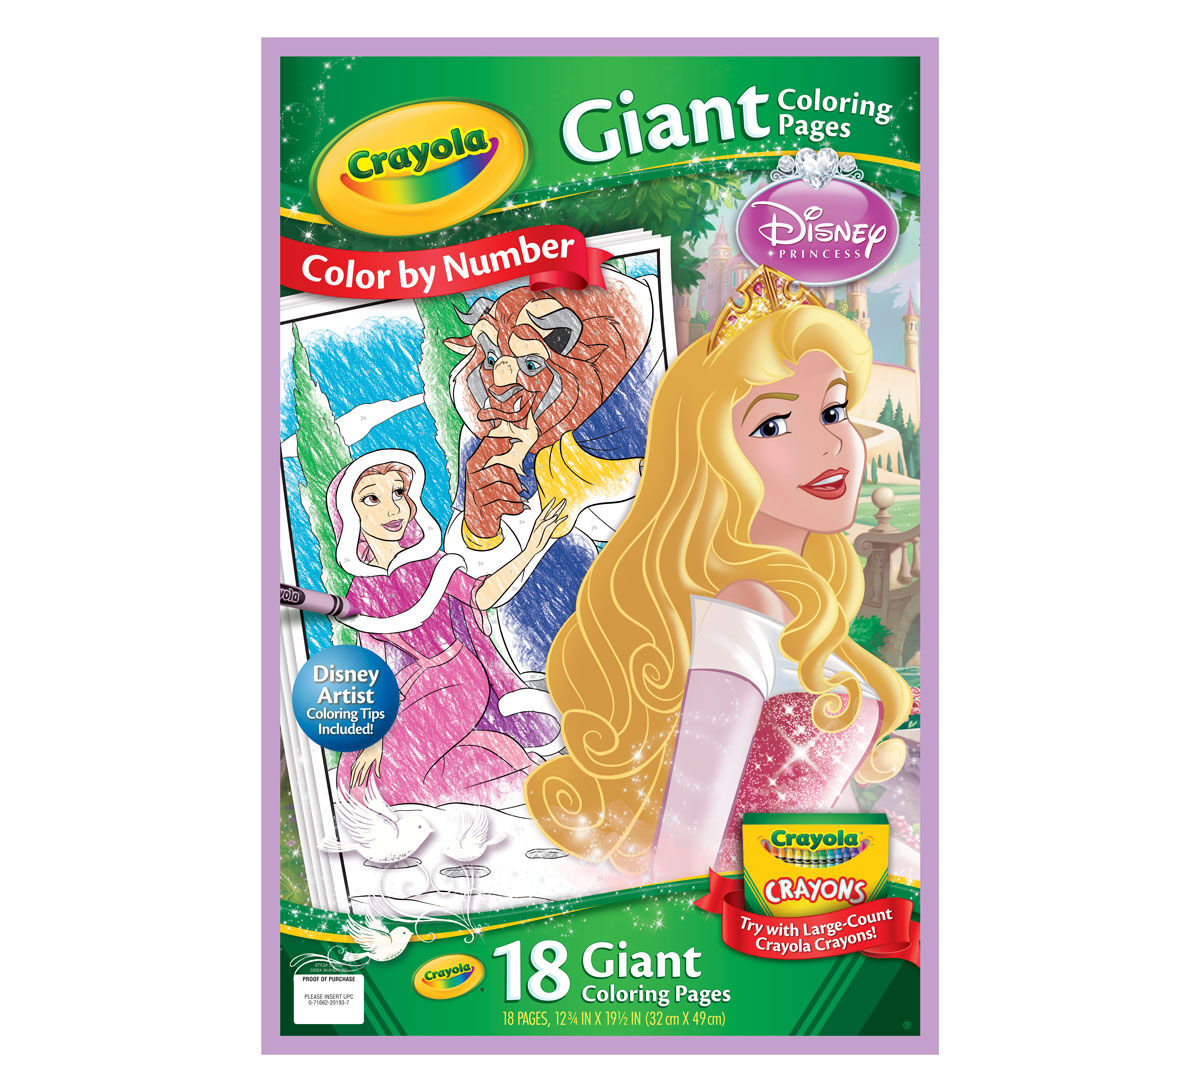 disney giant coloring pages - photo#10